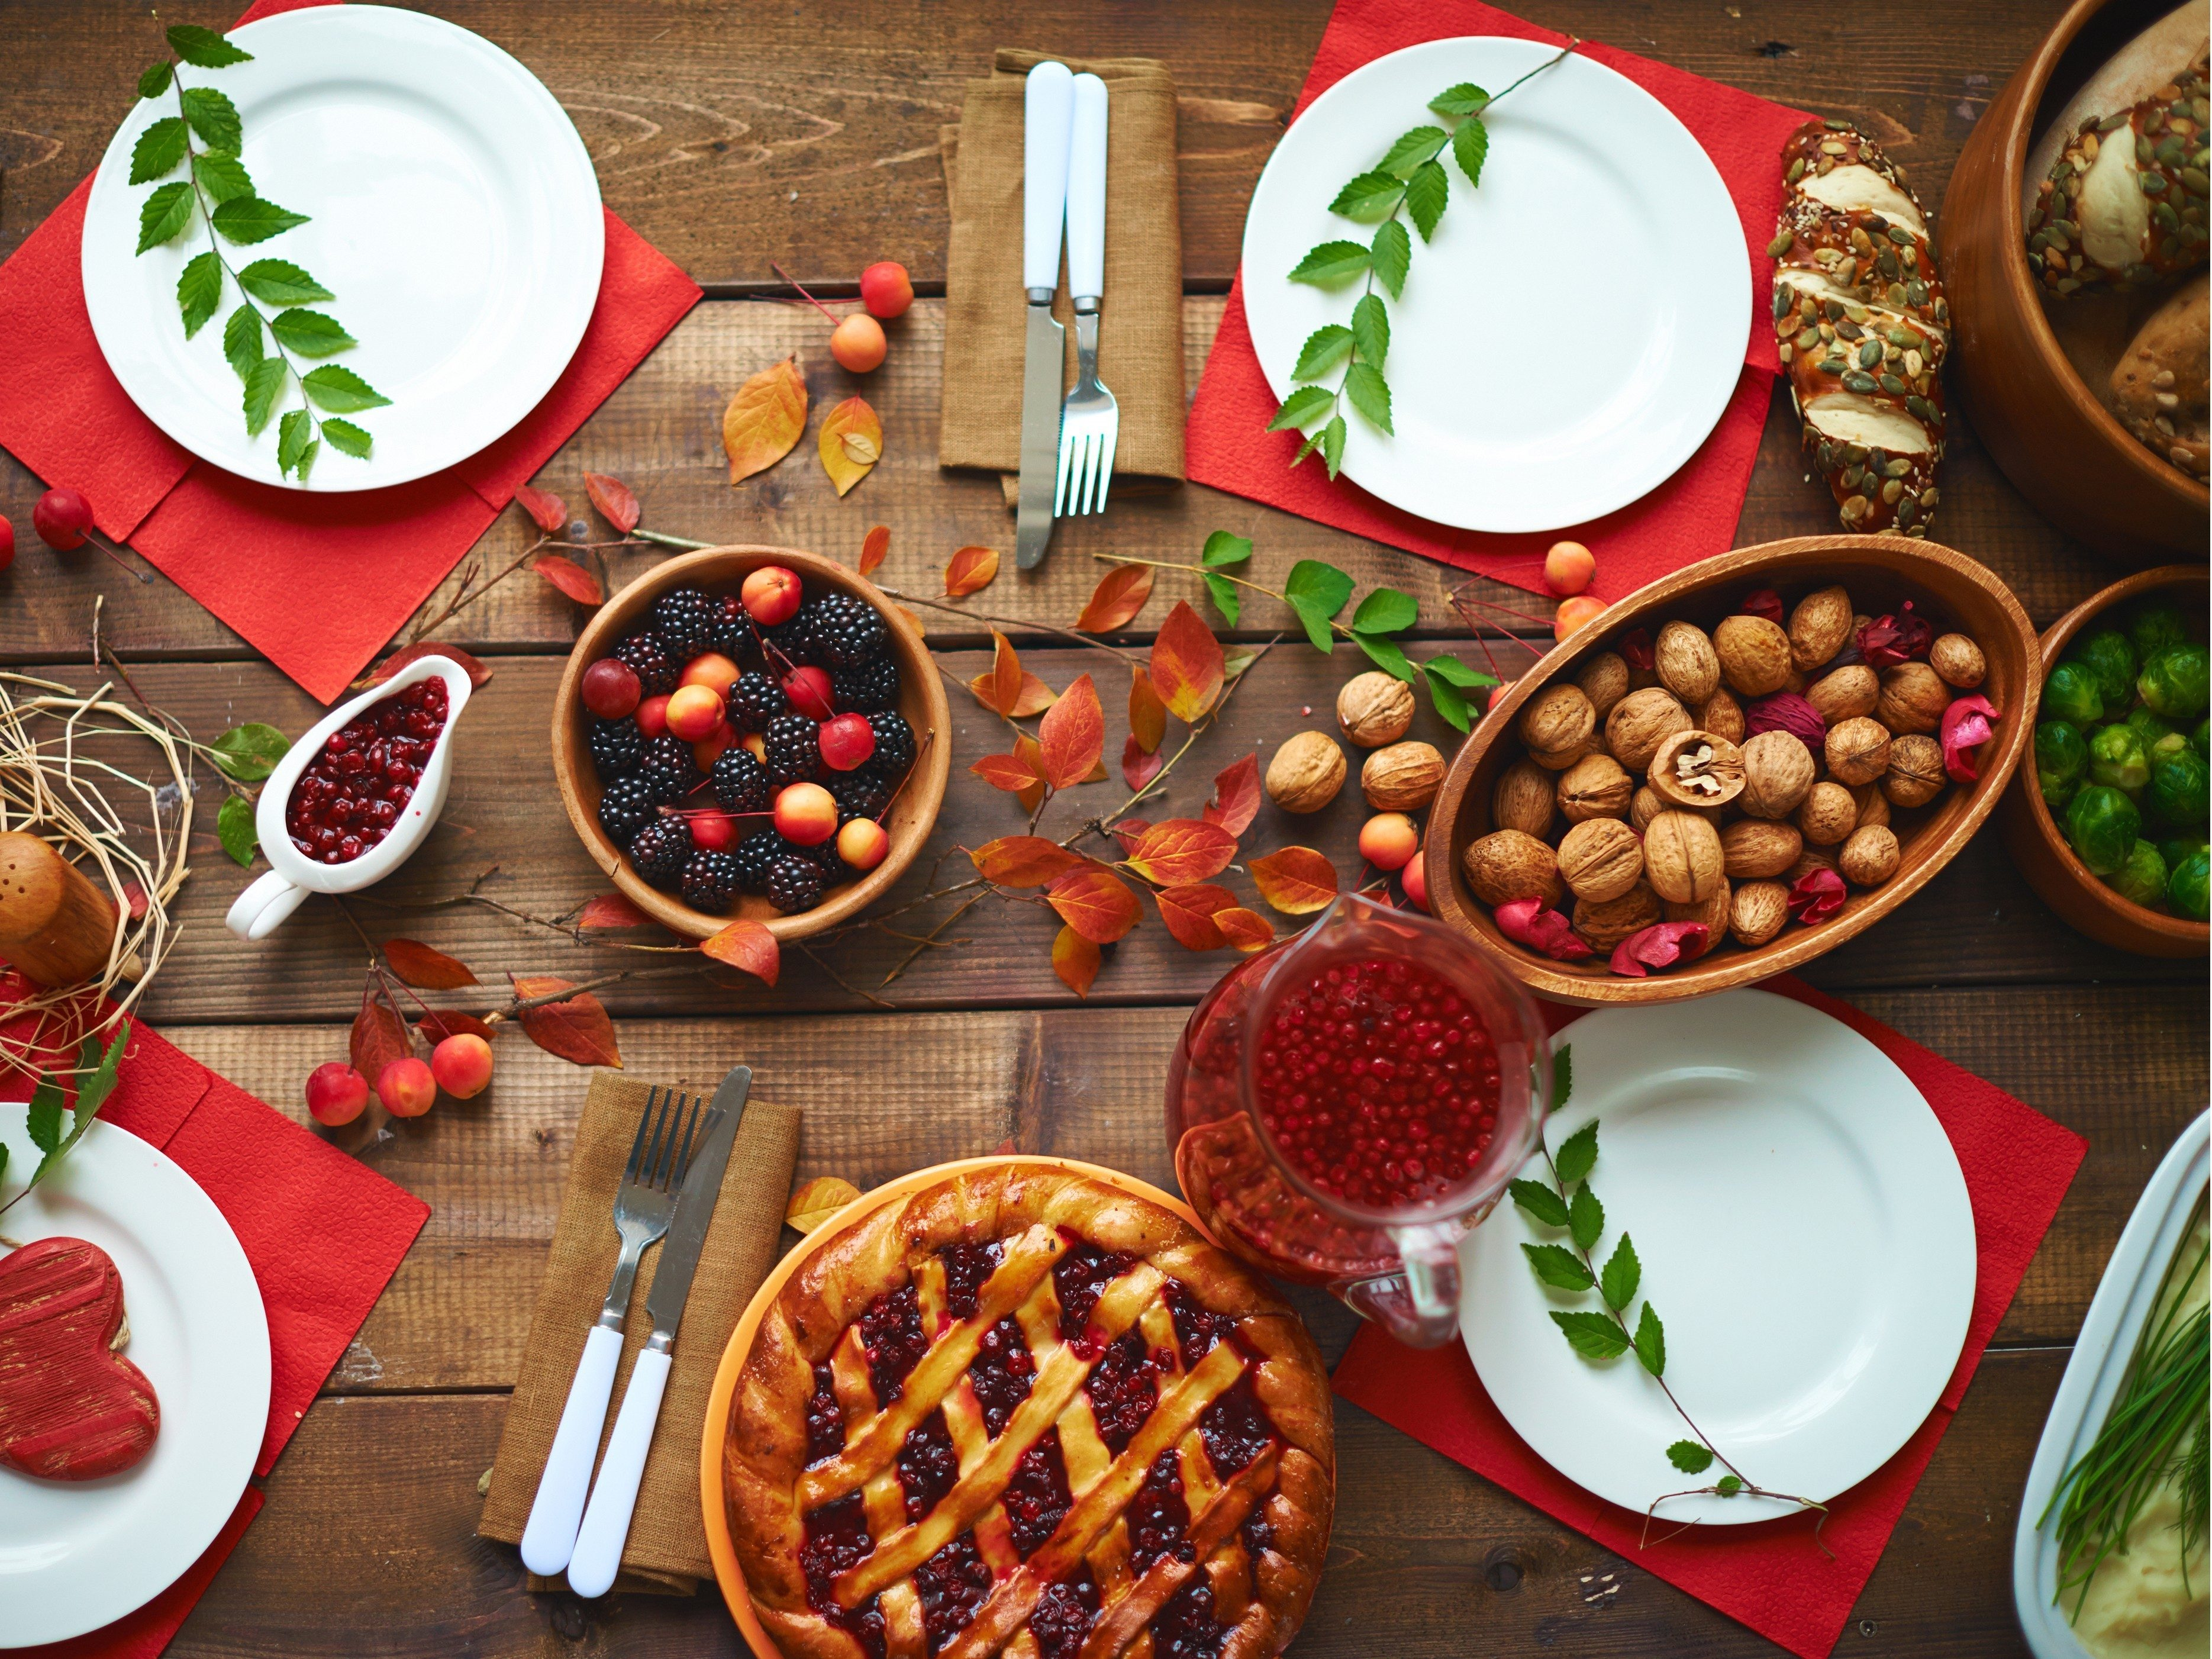 Watch 14 Healthy Holiday Eating Tips That Will Help You Avoid Those Extra Pounds video